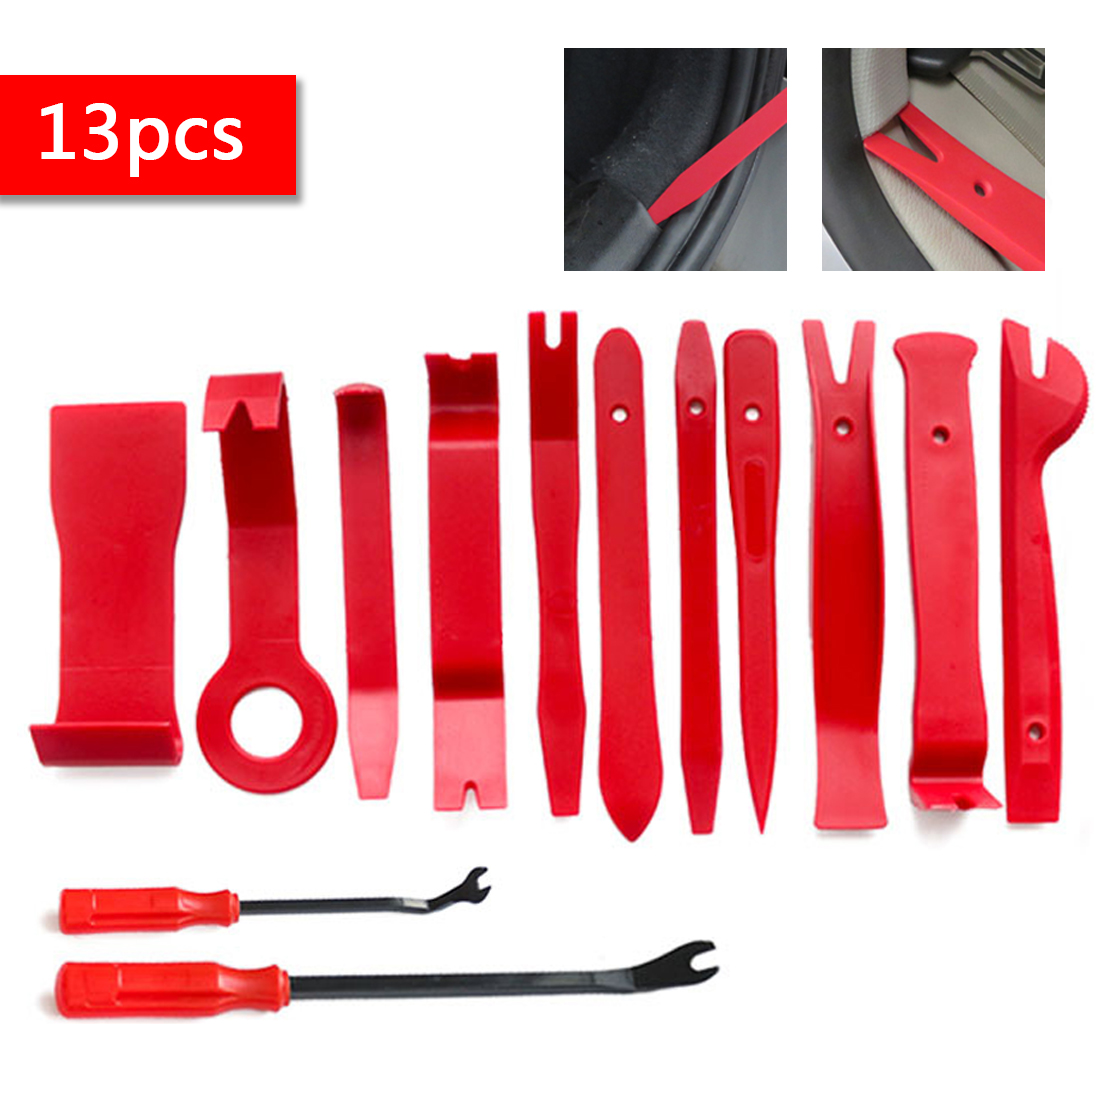 13pcs Pry Disassembly Tool Interior Door Clip Panel Trim Dashboard Removal Tool Auto Car Opening Repair Tool Hand Tool Kit marking tools